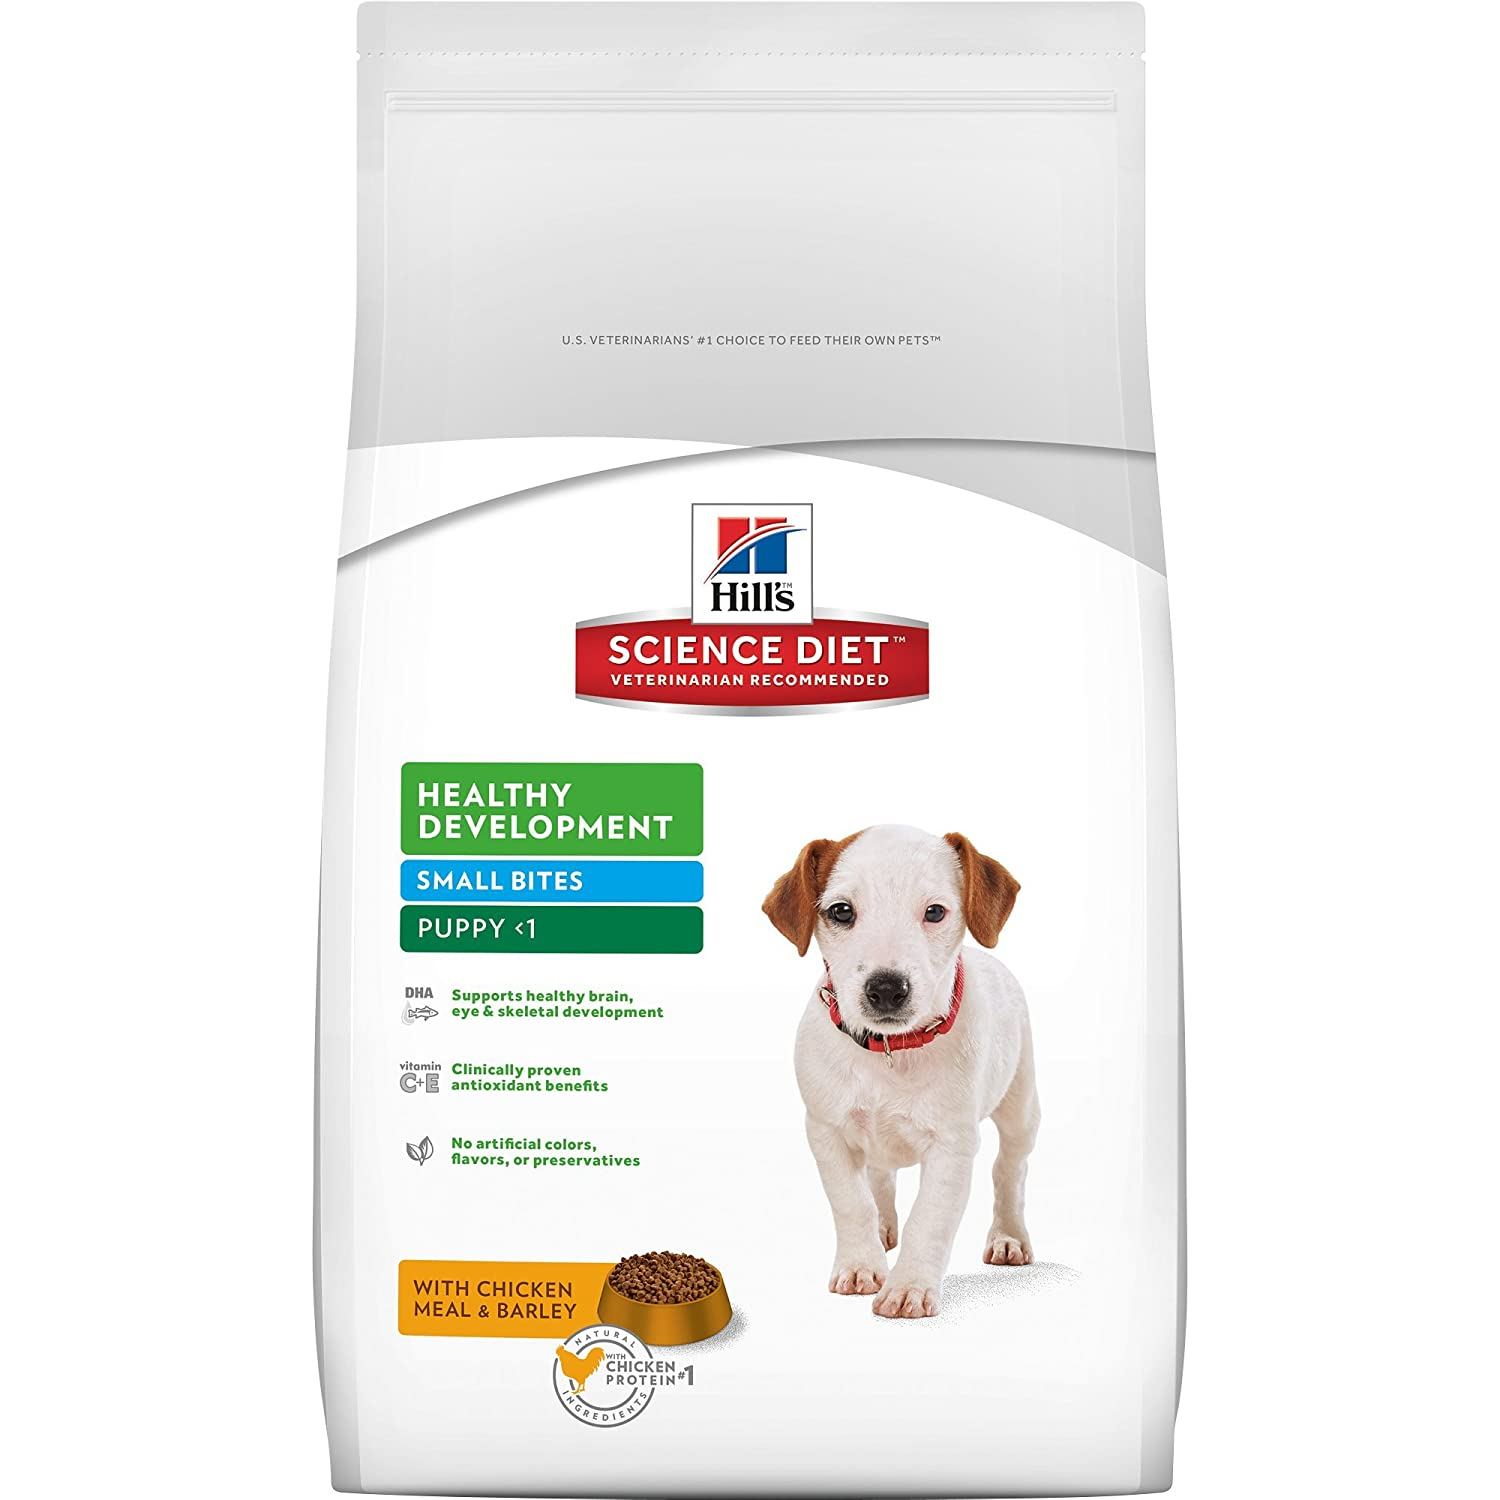 Hill's Science Diet Puppy Healthy Development Dry Dog Food